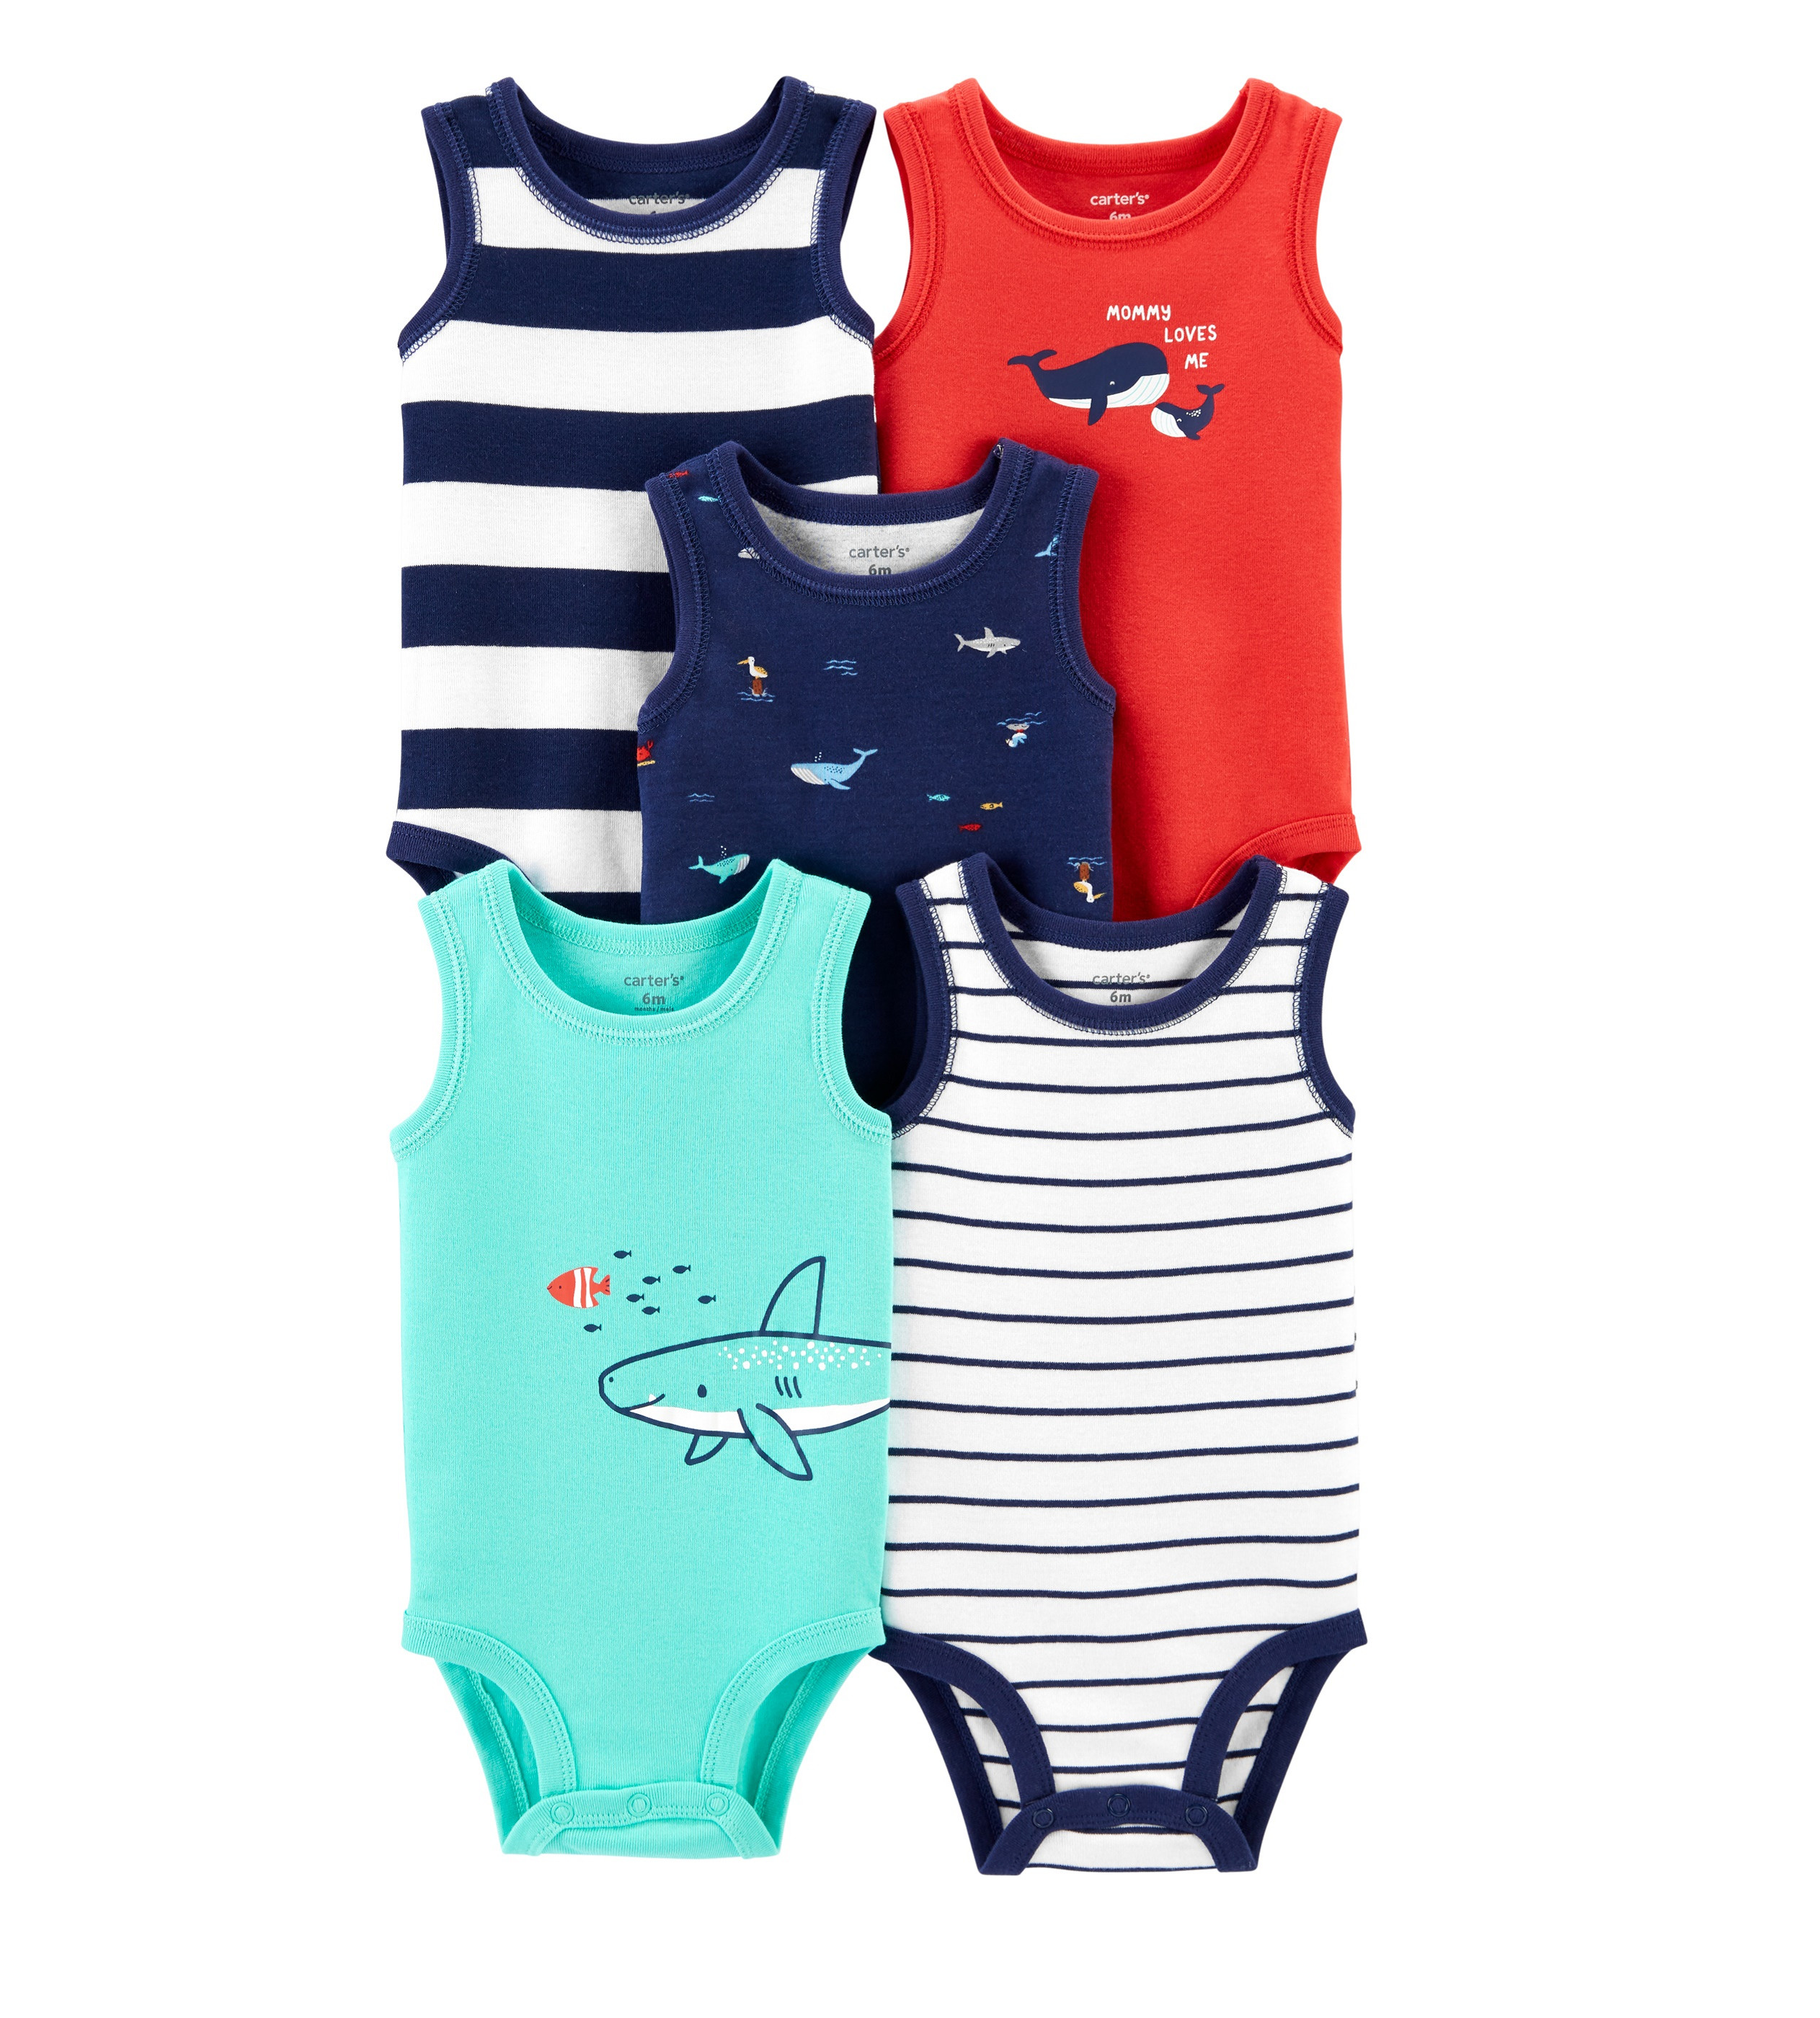 Купити Набір боді Carters 5-Pack Navy/Turquoise/Red - фото 1